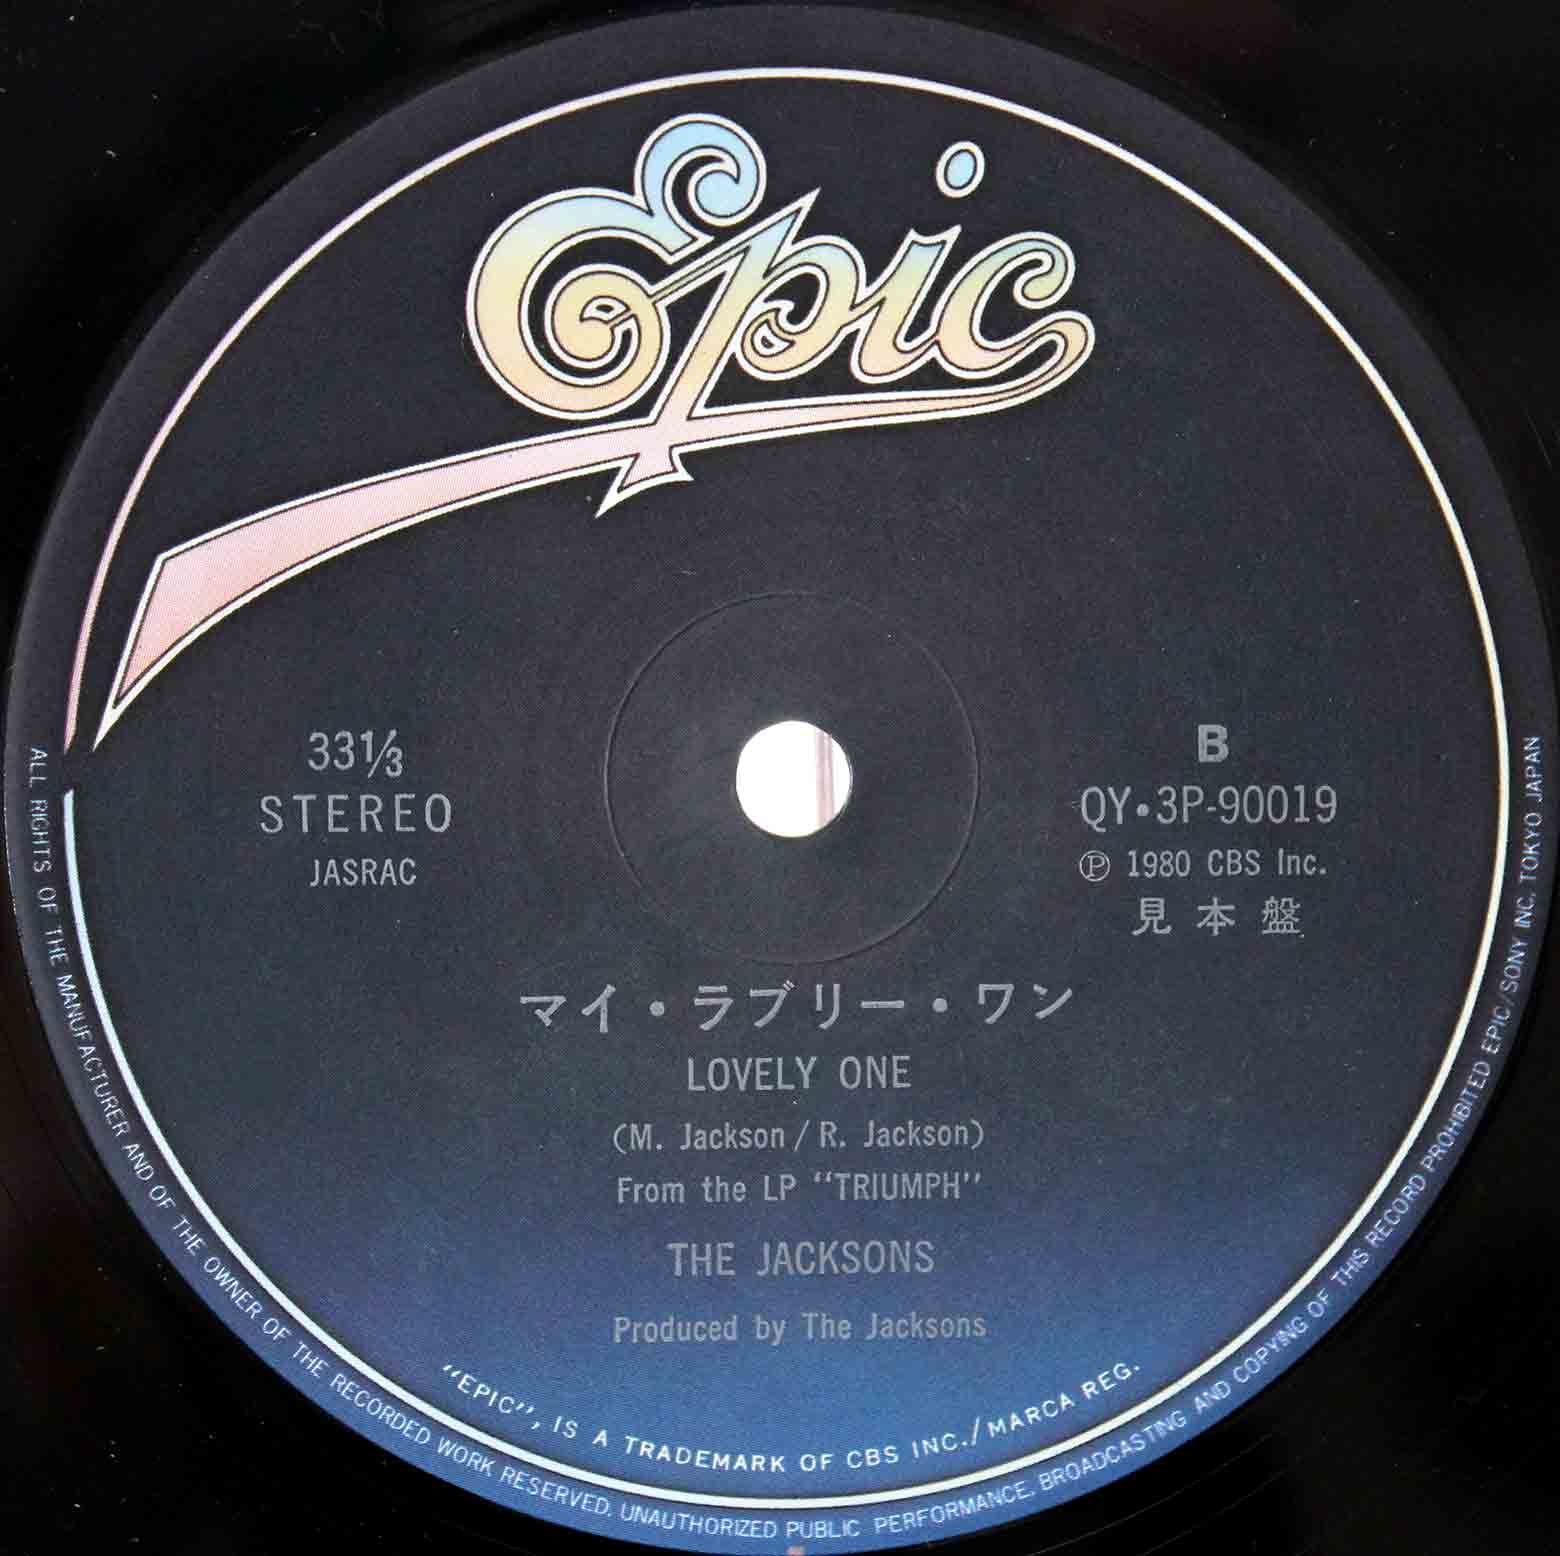 The Jacksons - Lovely one 02